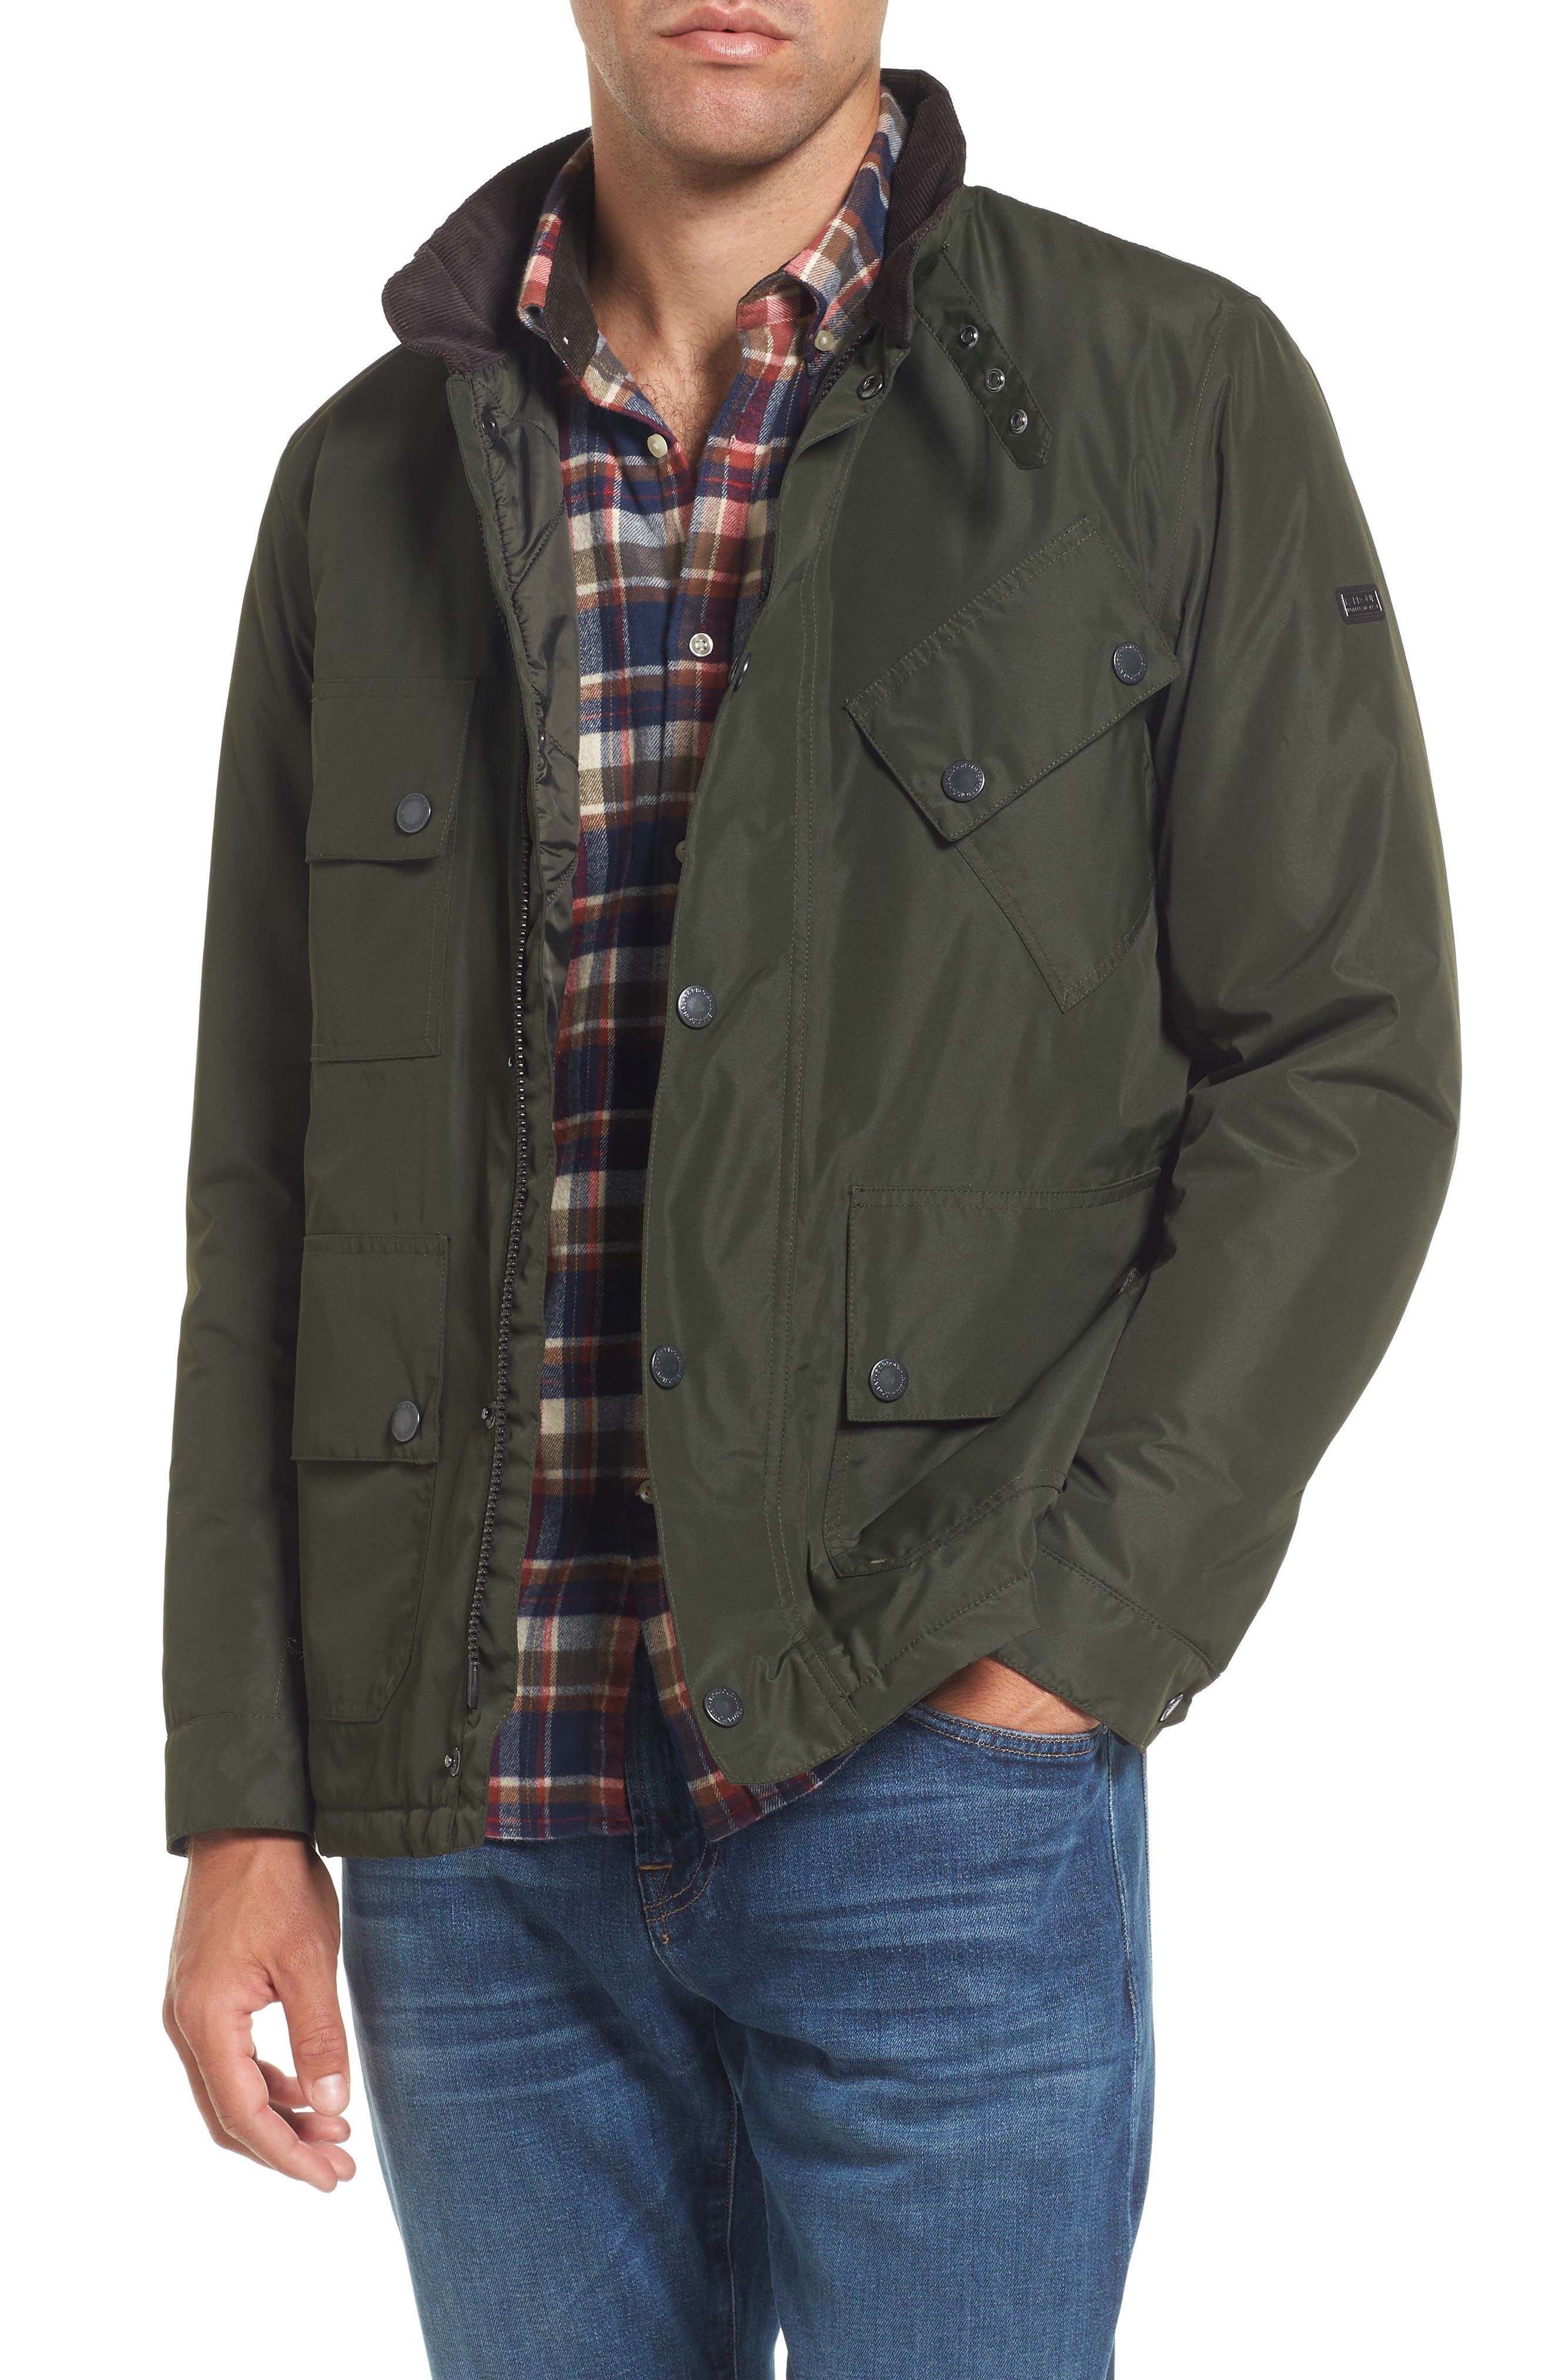 B.International Tyne Waterproof Jacket,                         Main,                         color, Sage